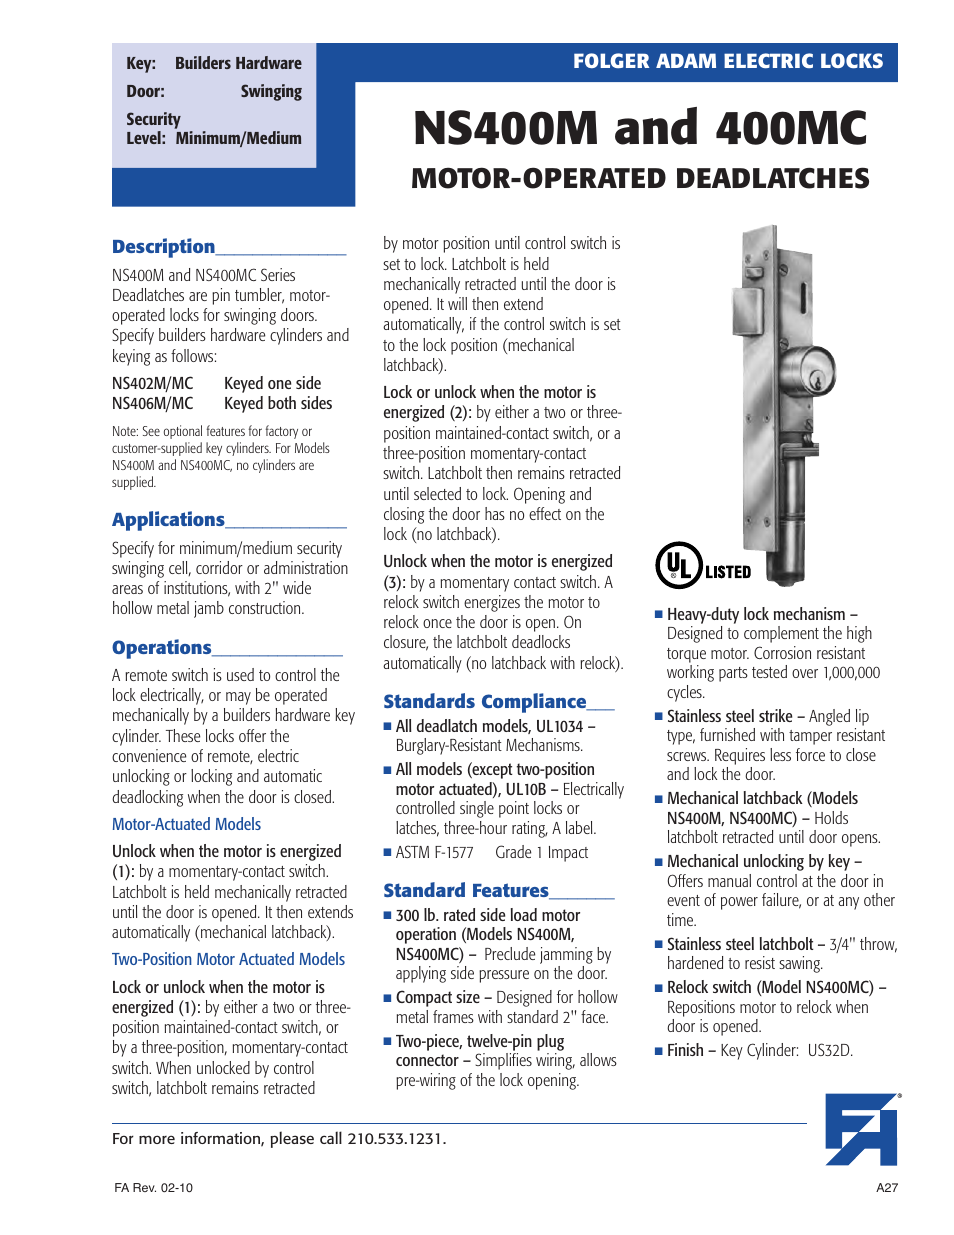 Southern Folger NS400M and 400MC MOTOR-OPERATED DEADLATCHES User Manual | 4  pages